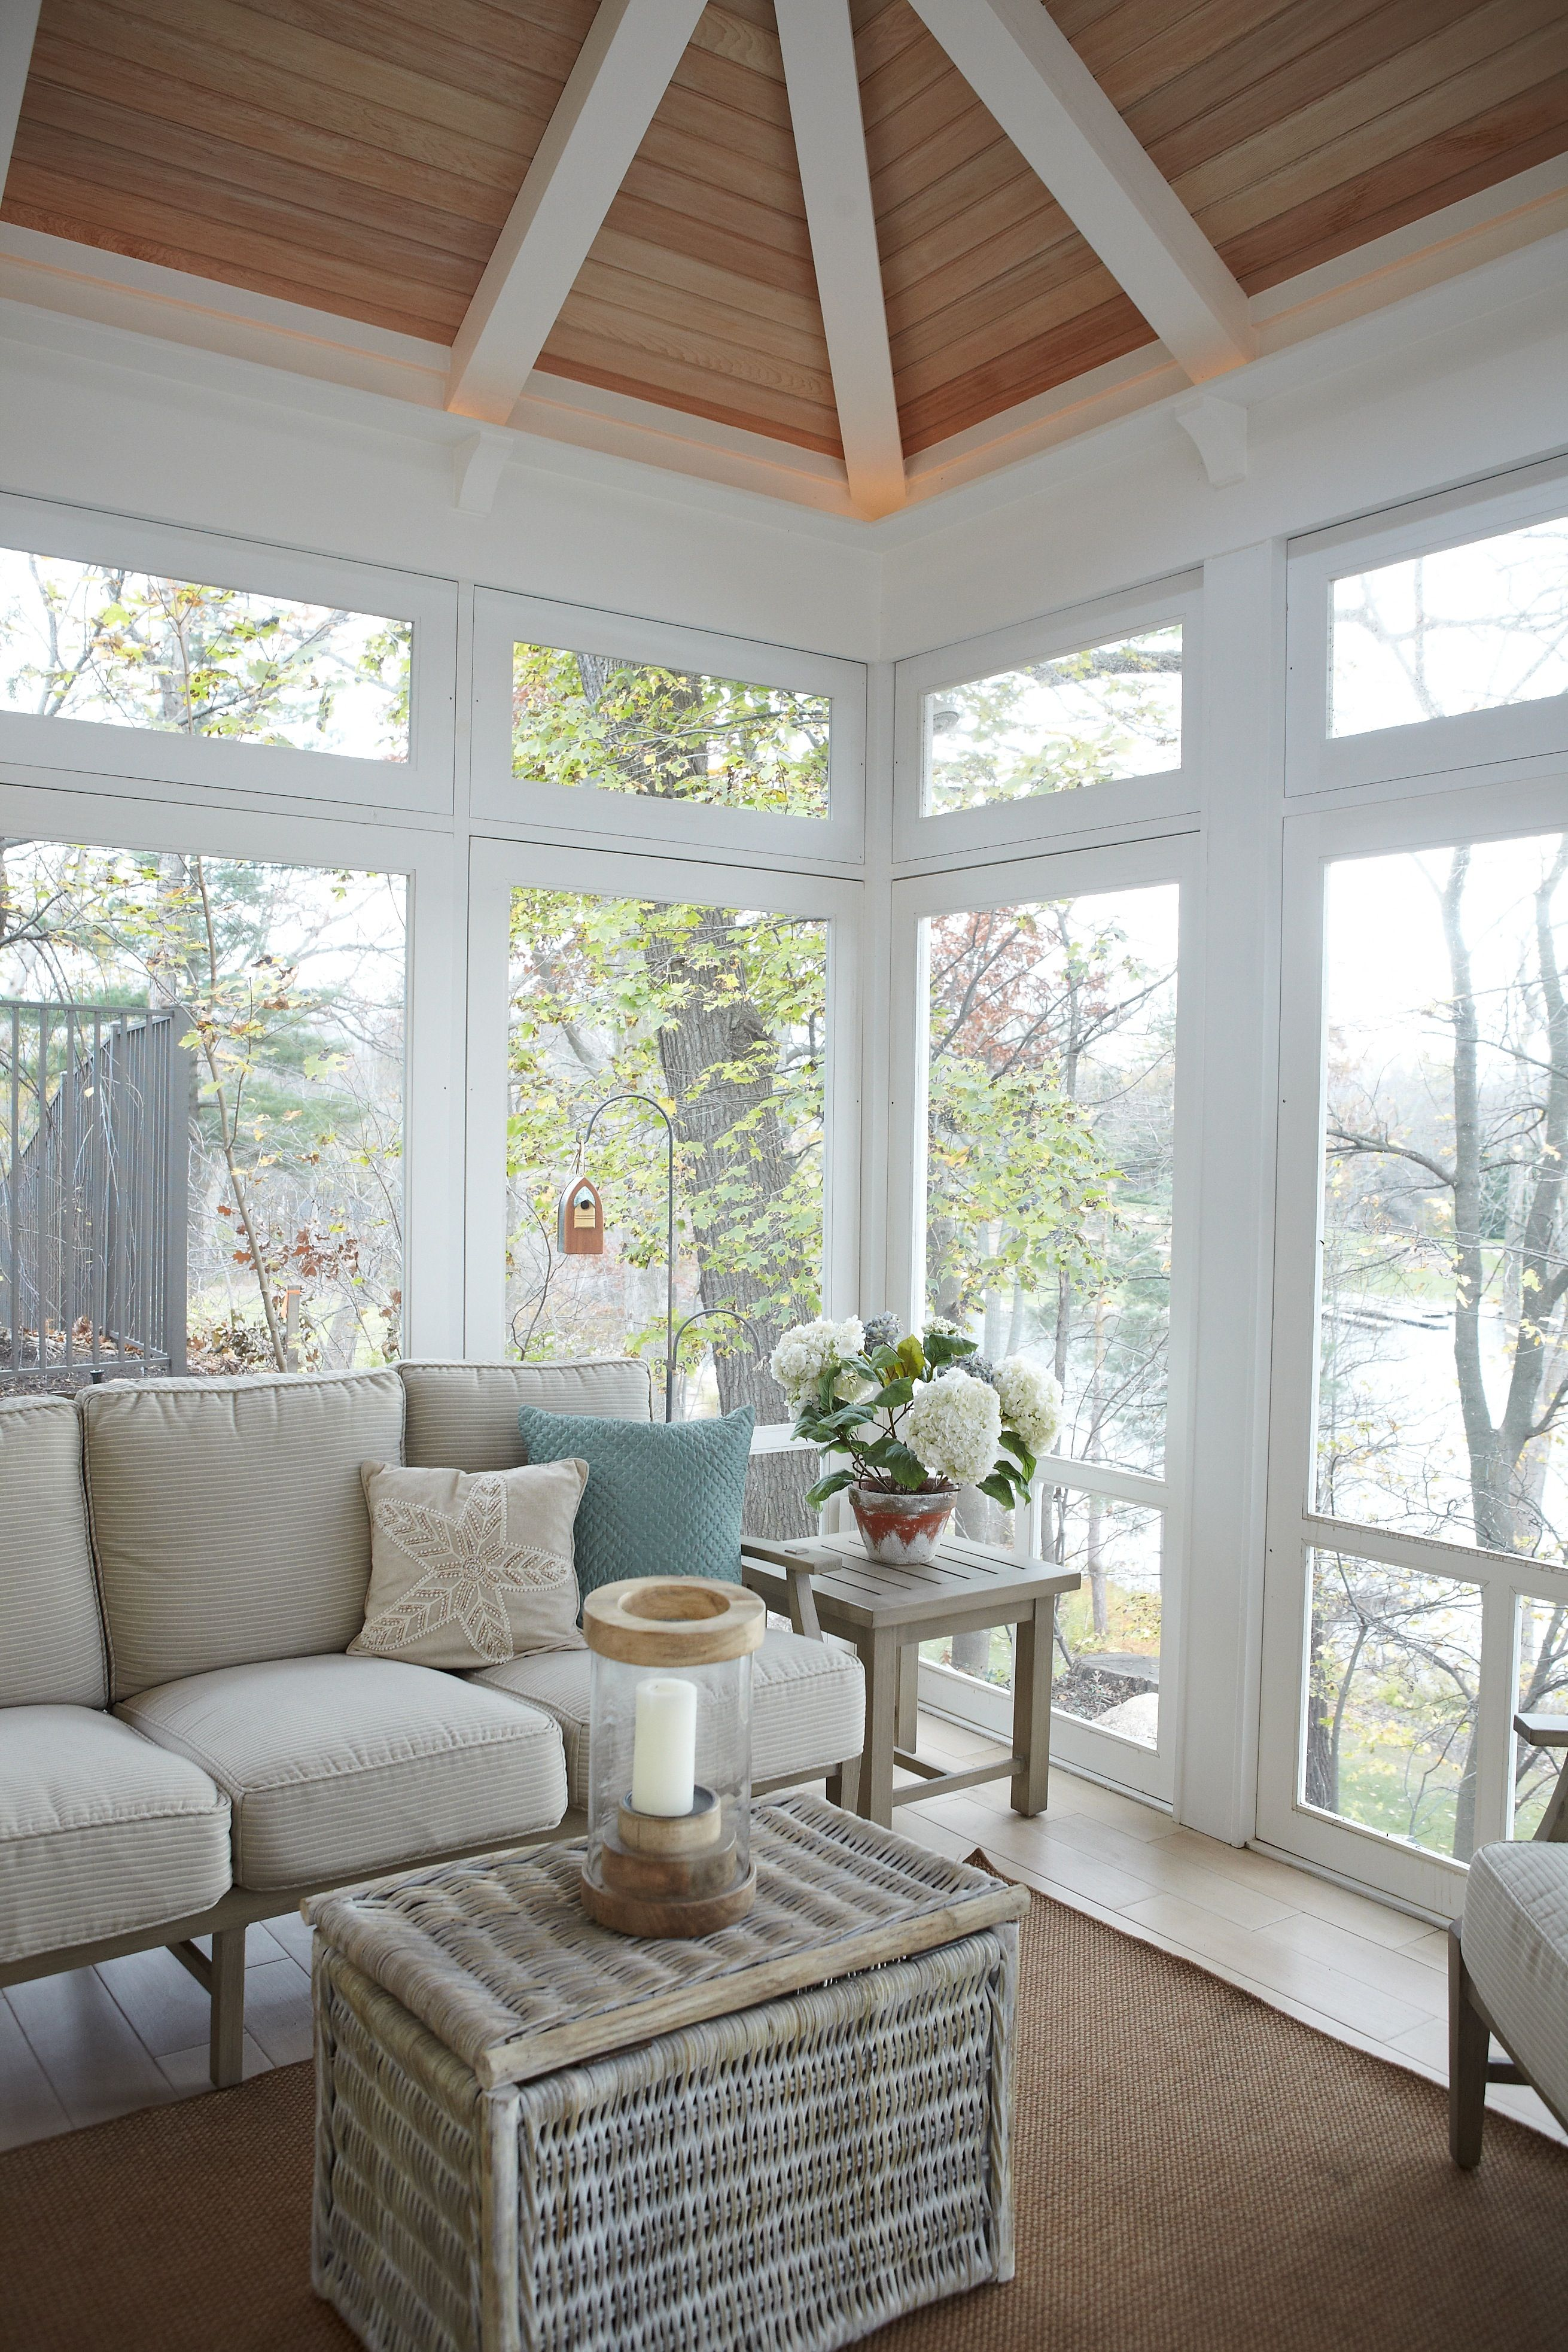 Home Additions Sunroom Decorating Four Seasons Room: Sears Architects, Fisk Lake, East Grand Rapids, Cottage-style Architecture, Four Seasons Room